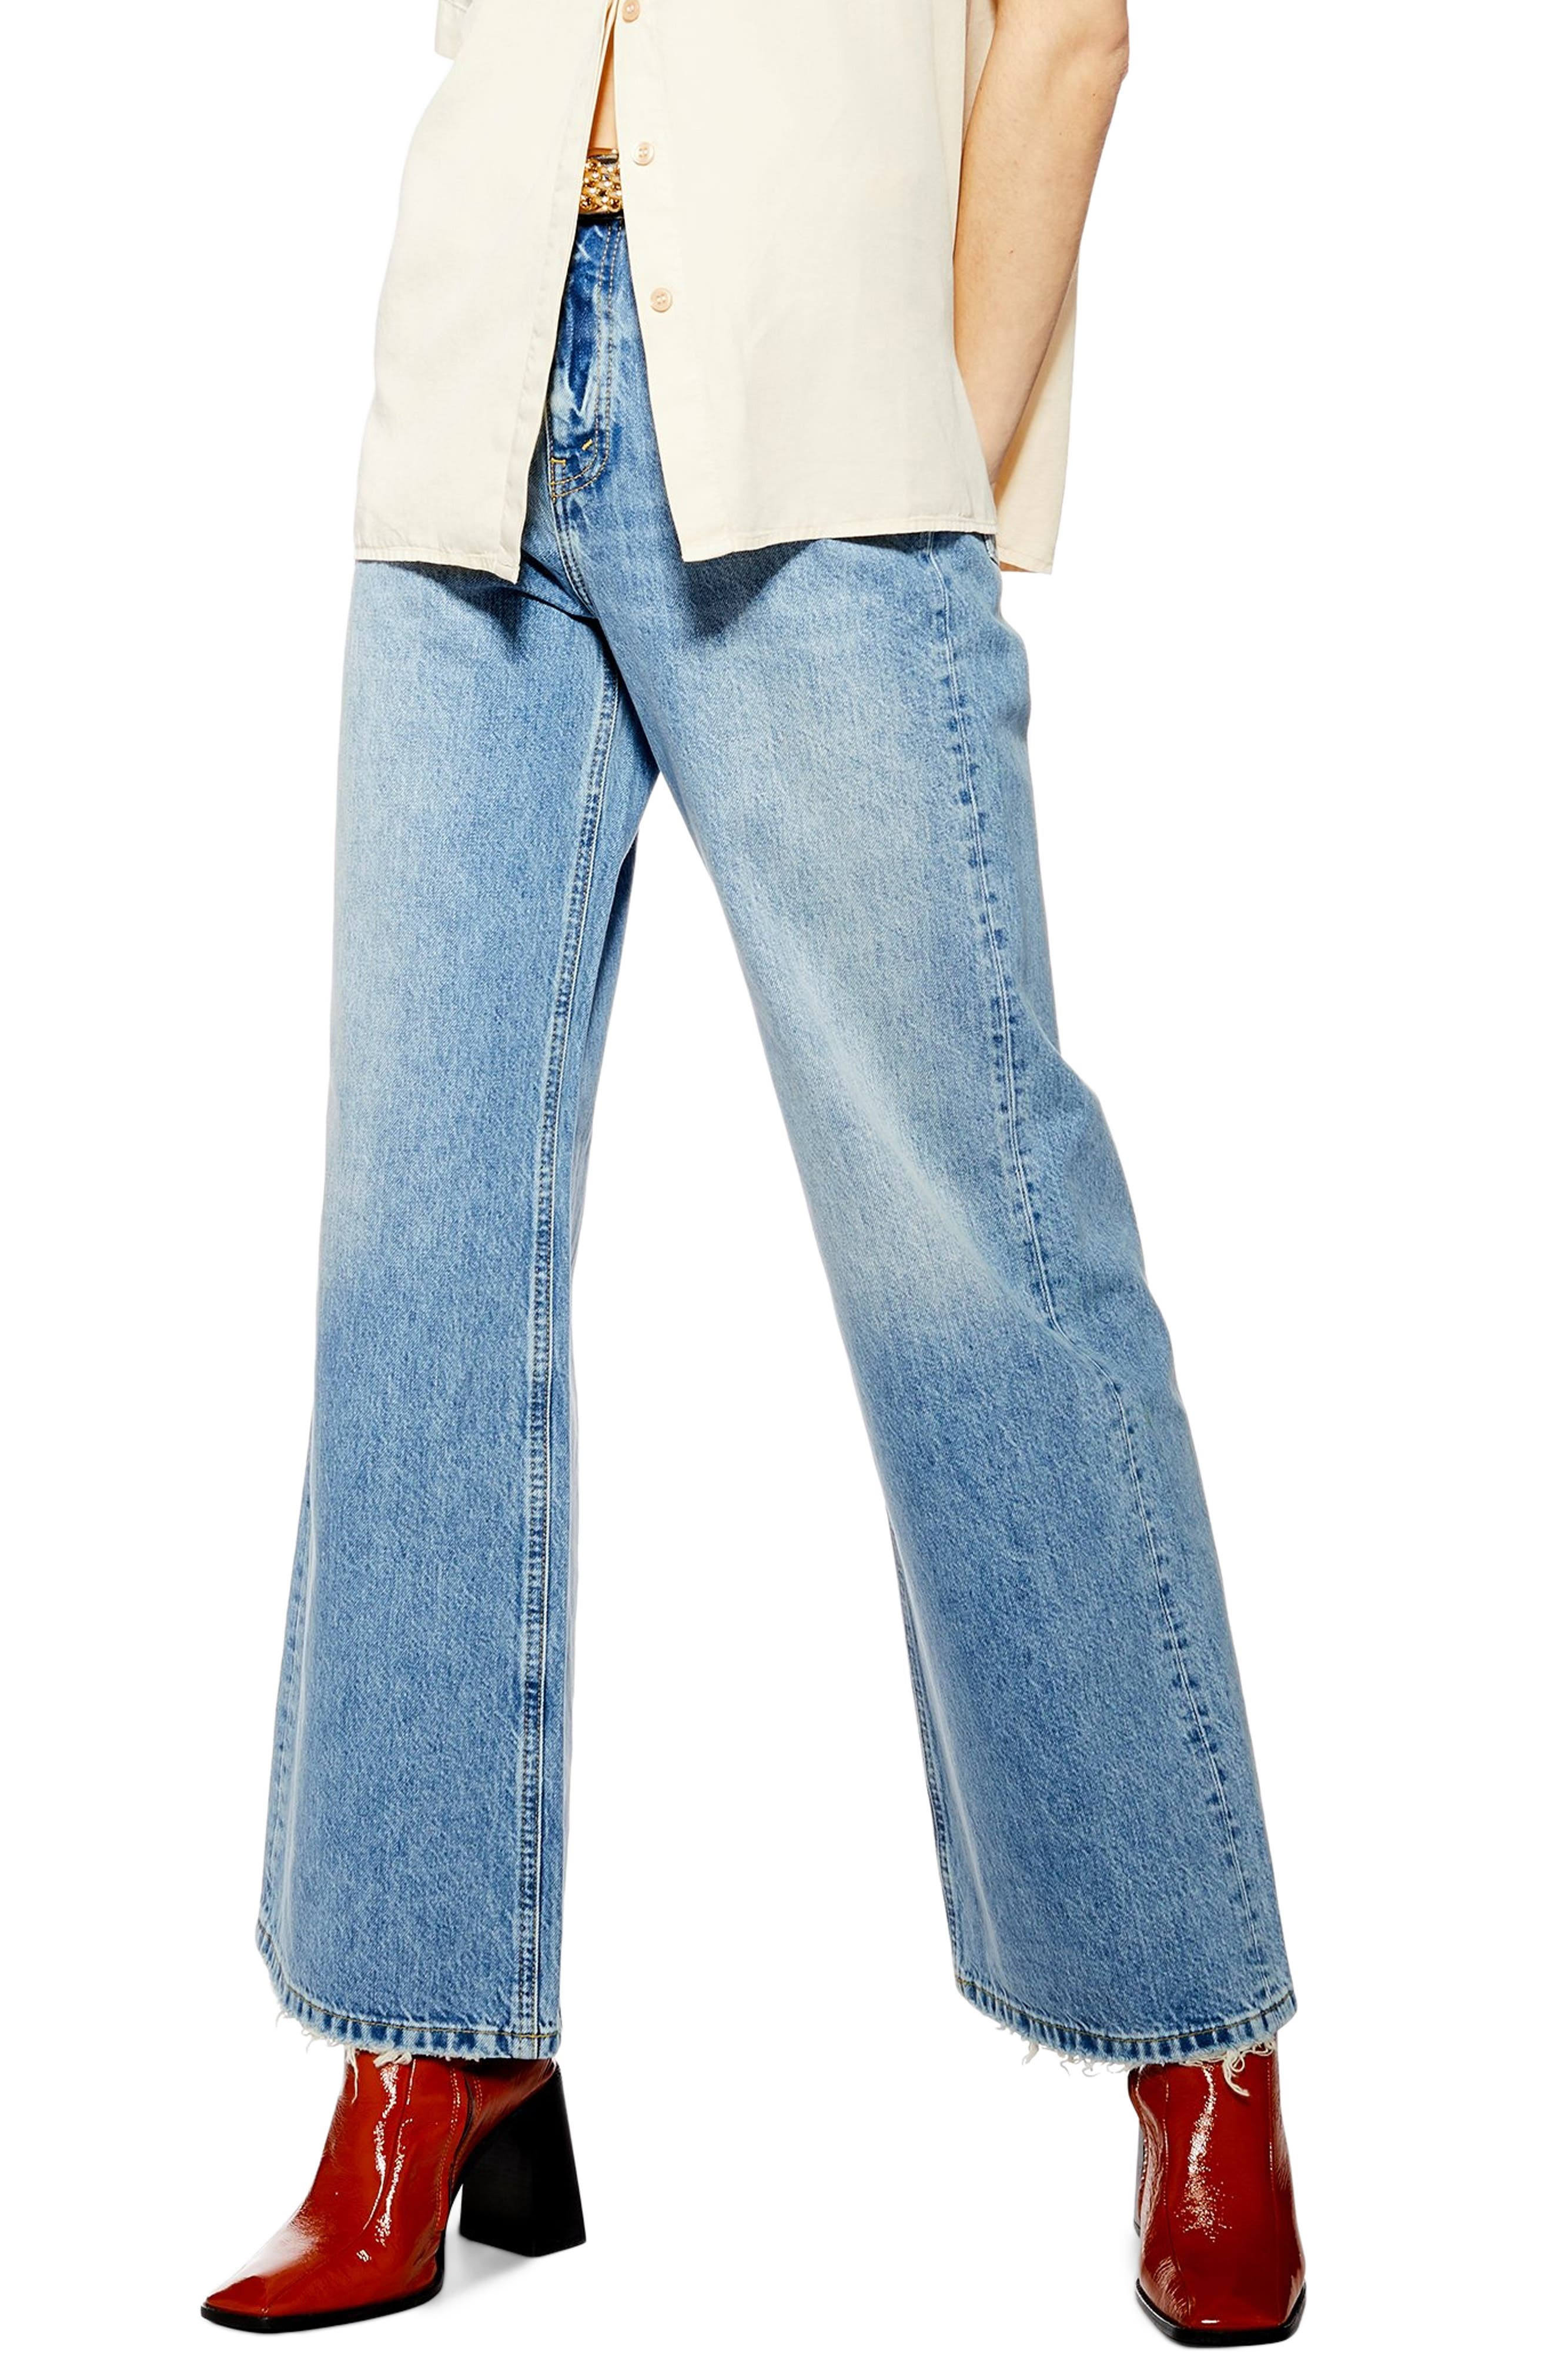 35d7250db331 Women s Jeans New Arrivals  Clothing